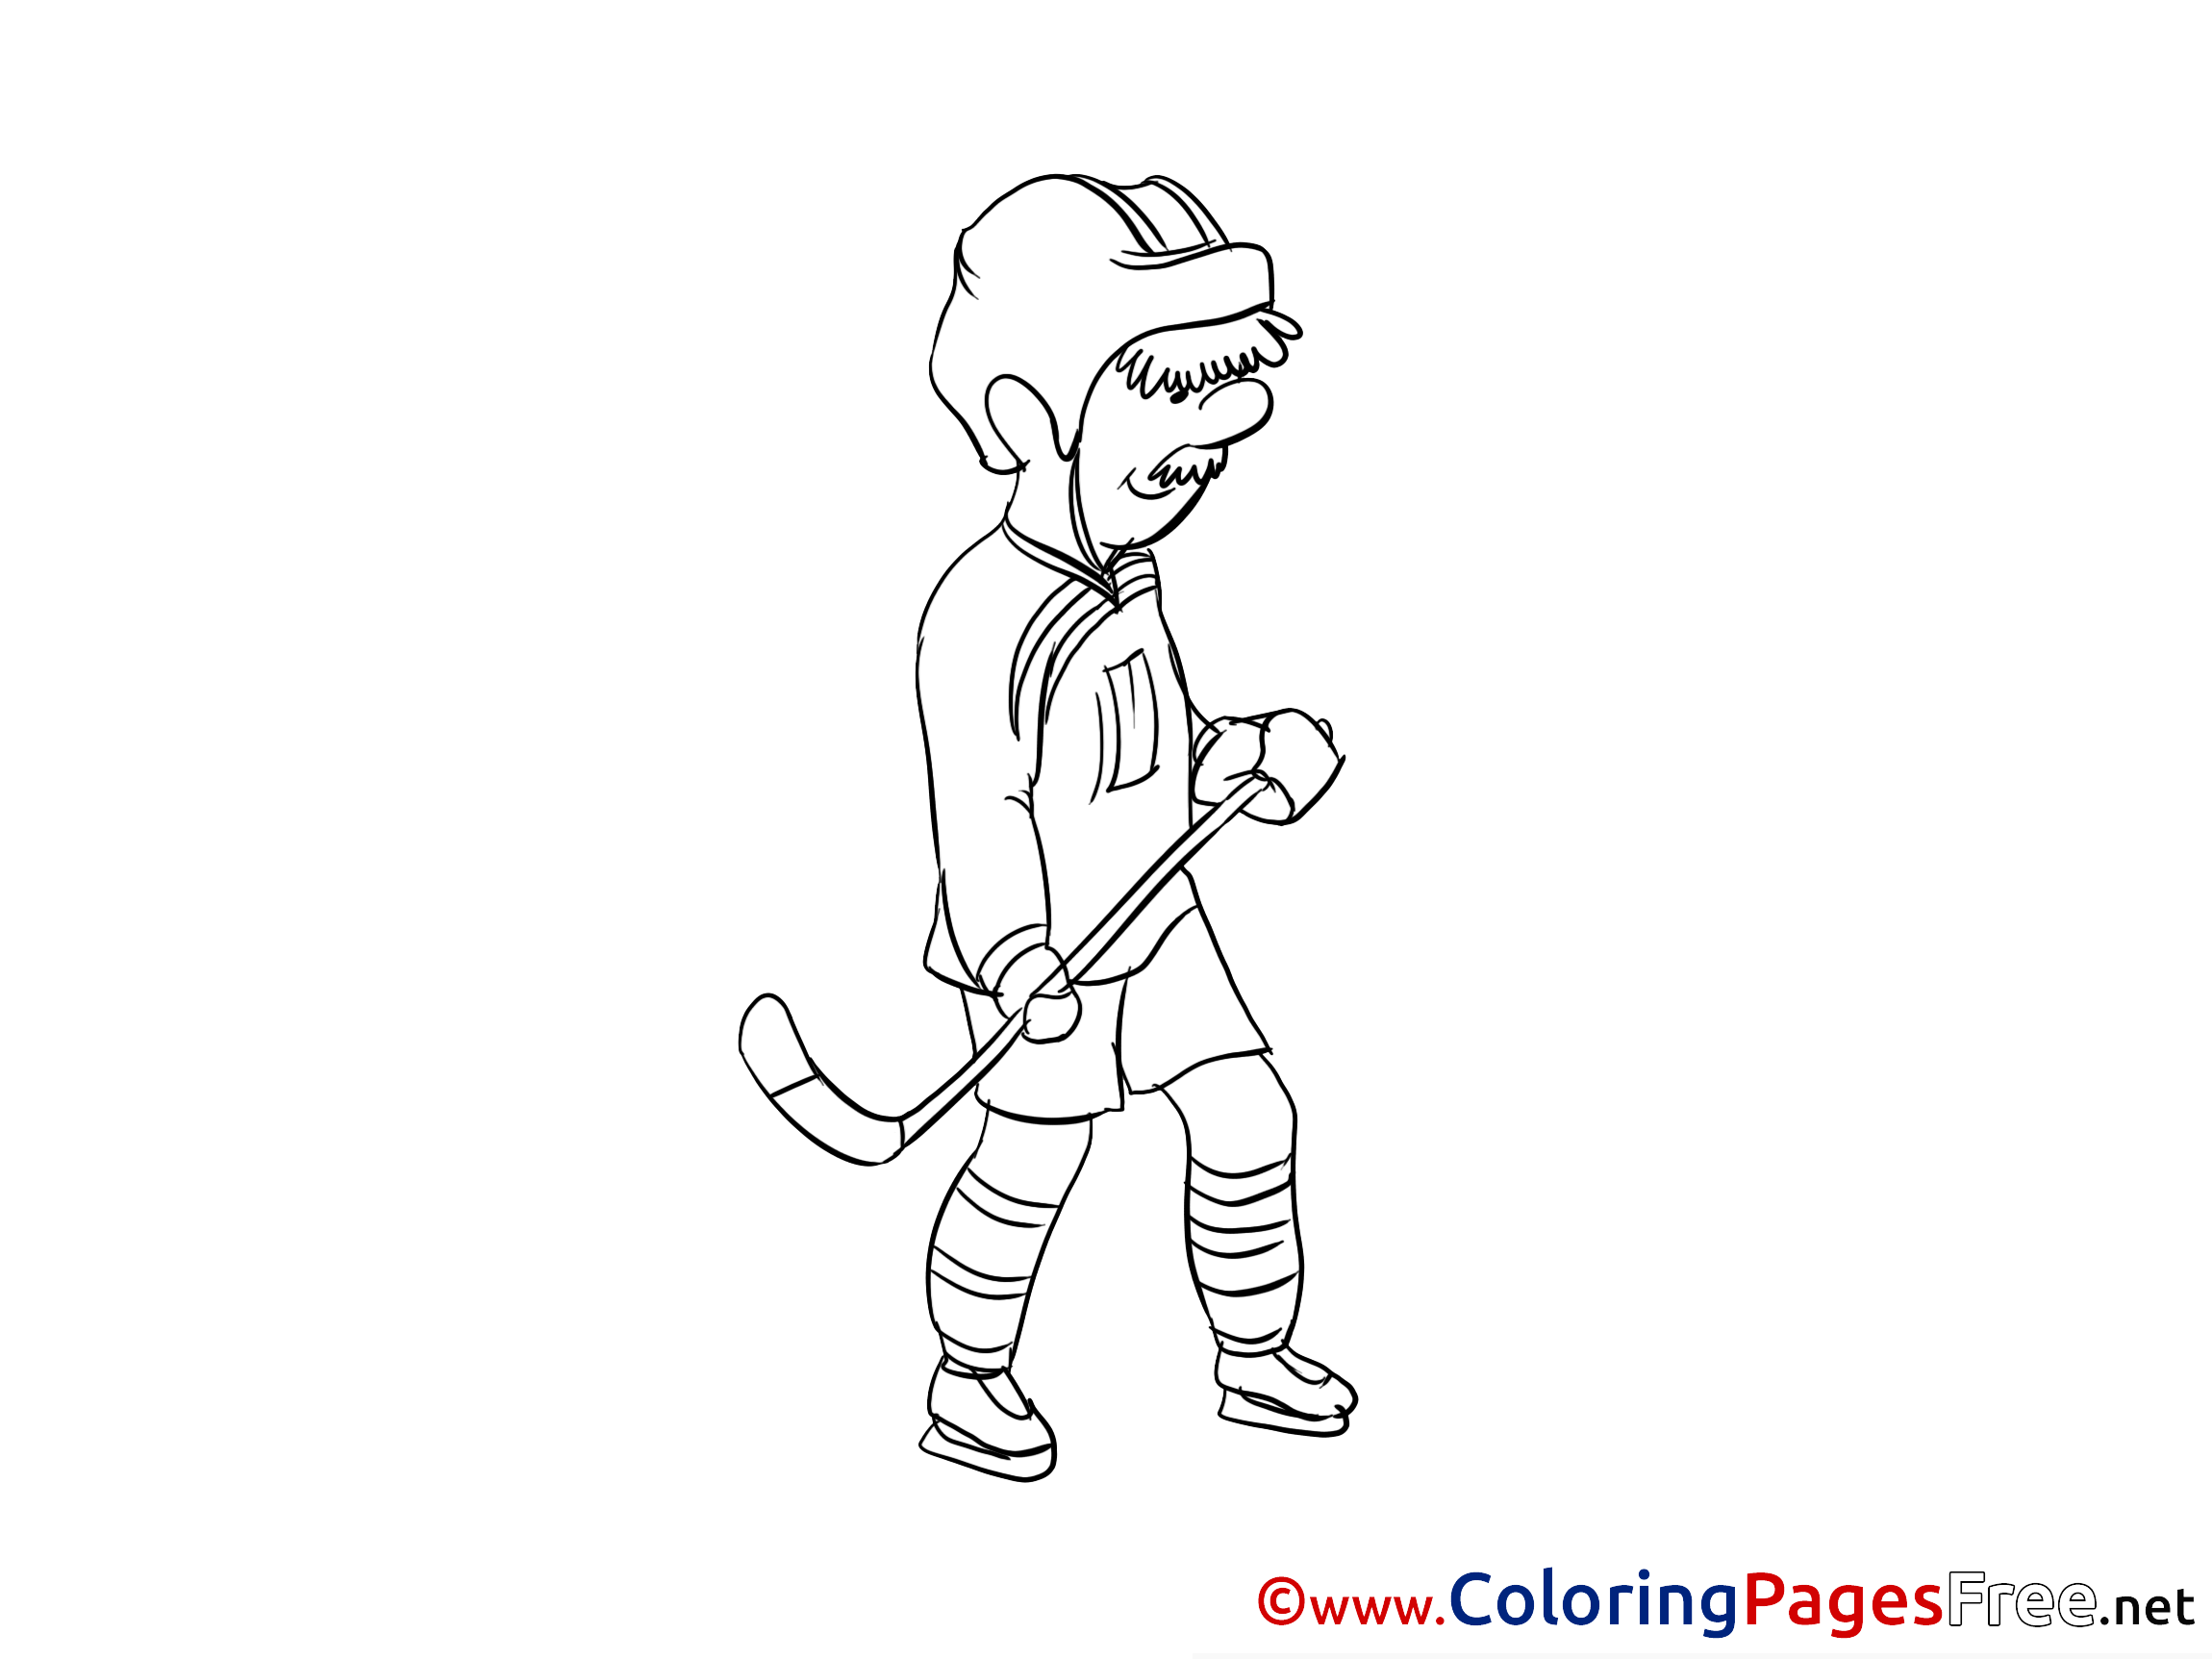 free iceman coloring pages - photo#8